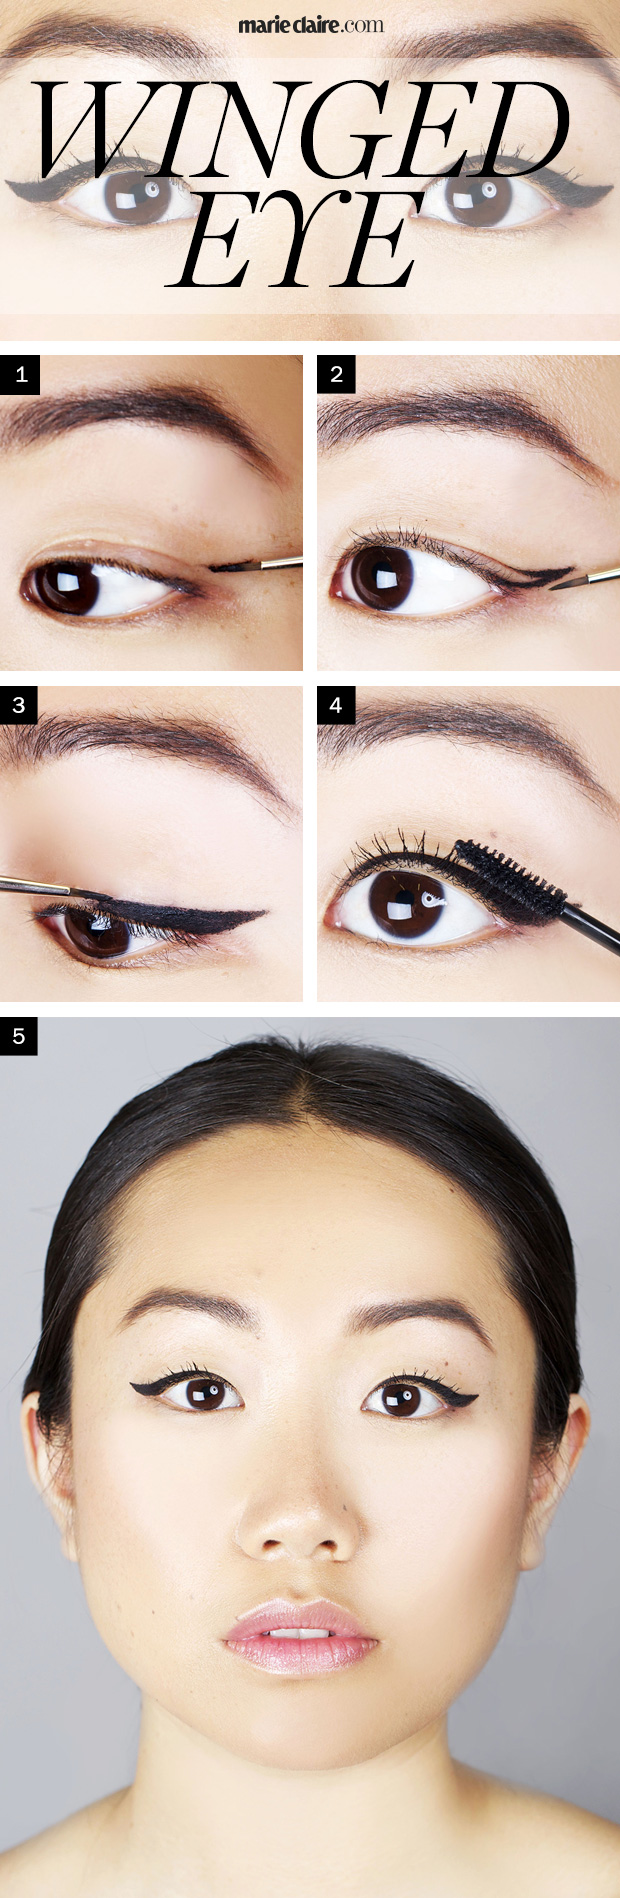 Howto Imagegridbestbronzerapplicationblush How To Wear Bronzer Makeup  Tutorials For Beginners How To Do Natural Learn How To Do Makeup Find And  Save